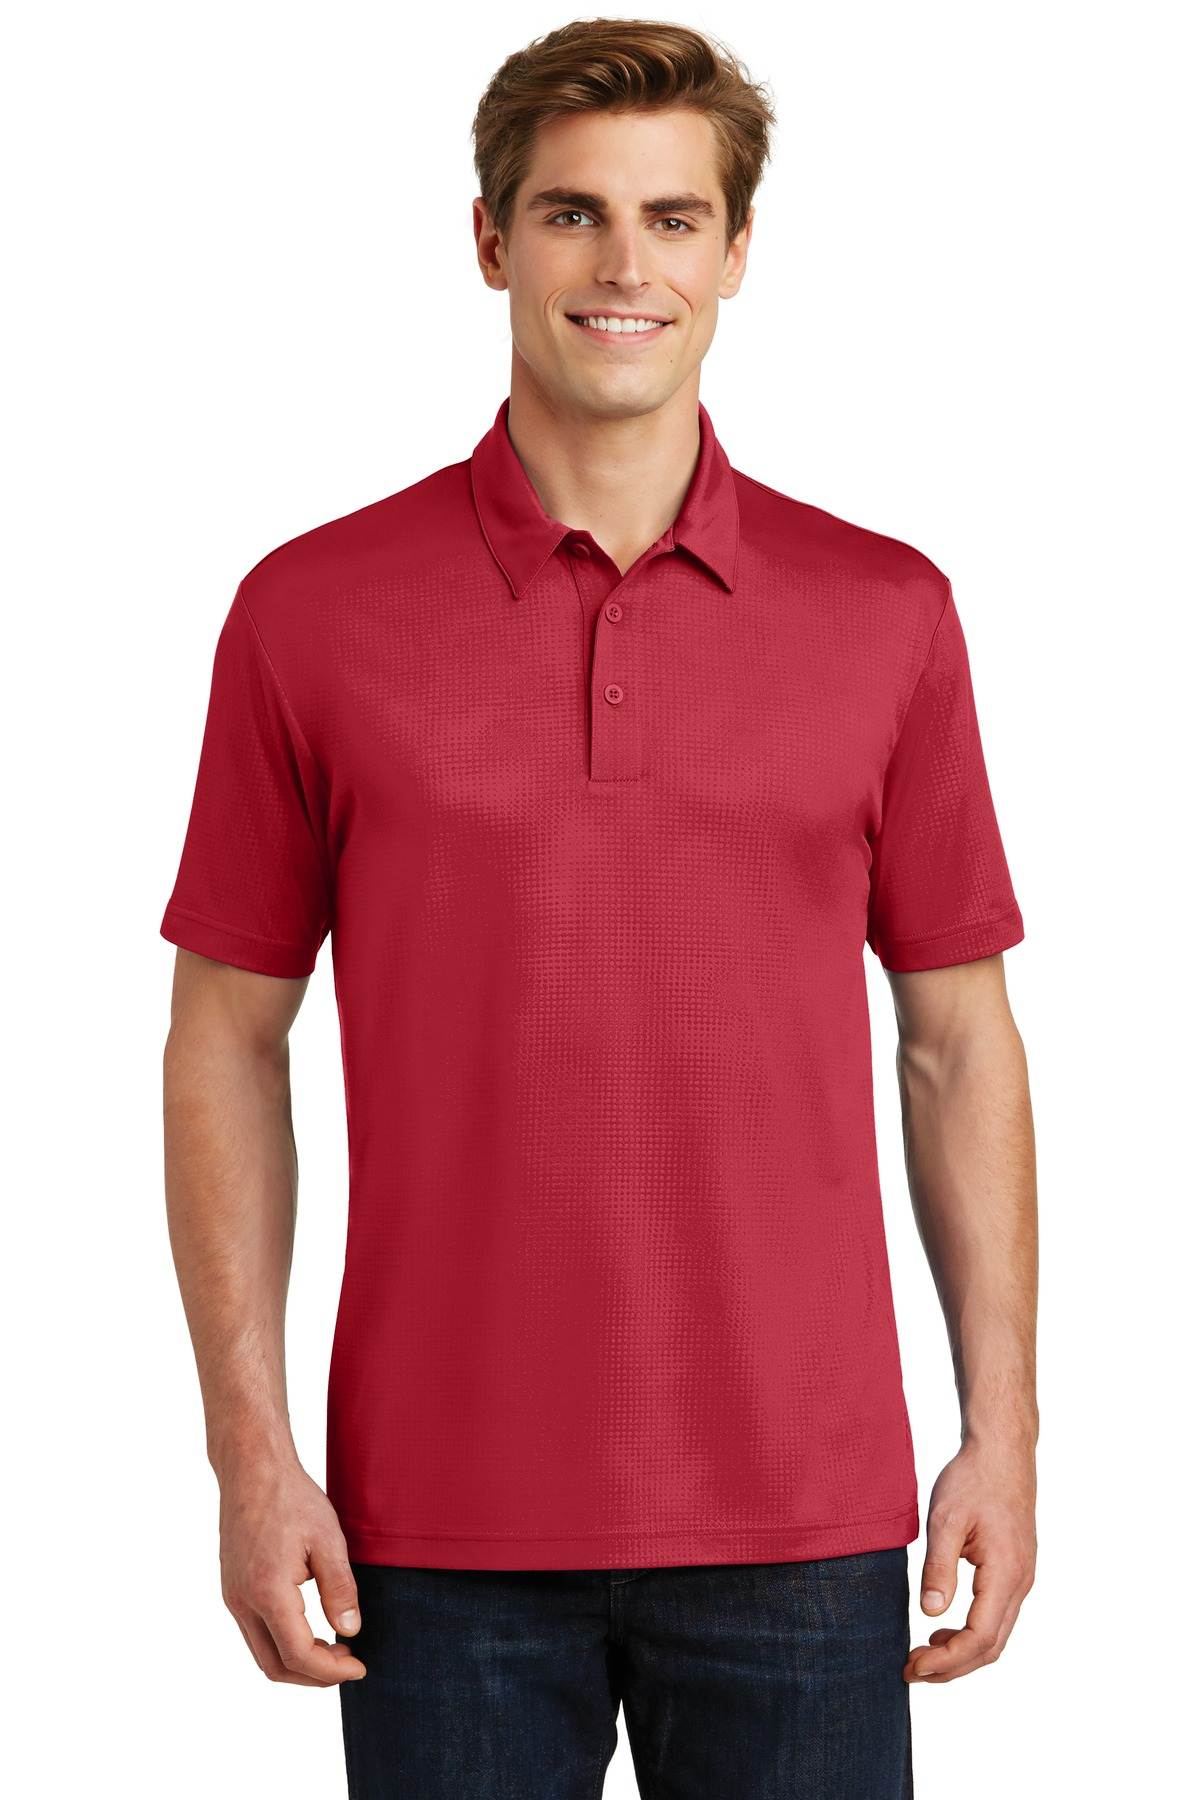 Sport-Tek ®  Embossed PosiCharge ®  Tough Polo ® . ST630 - Deep Red